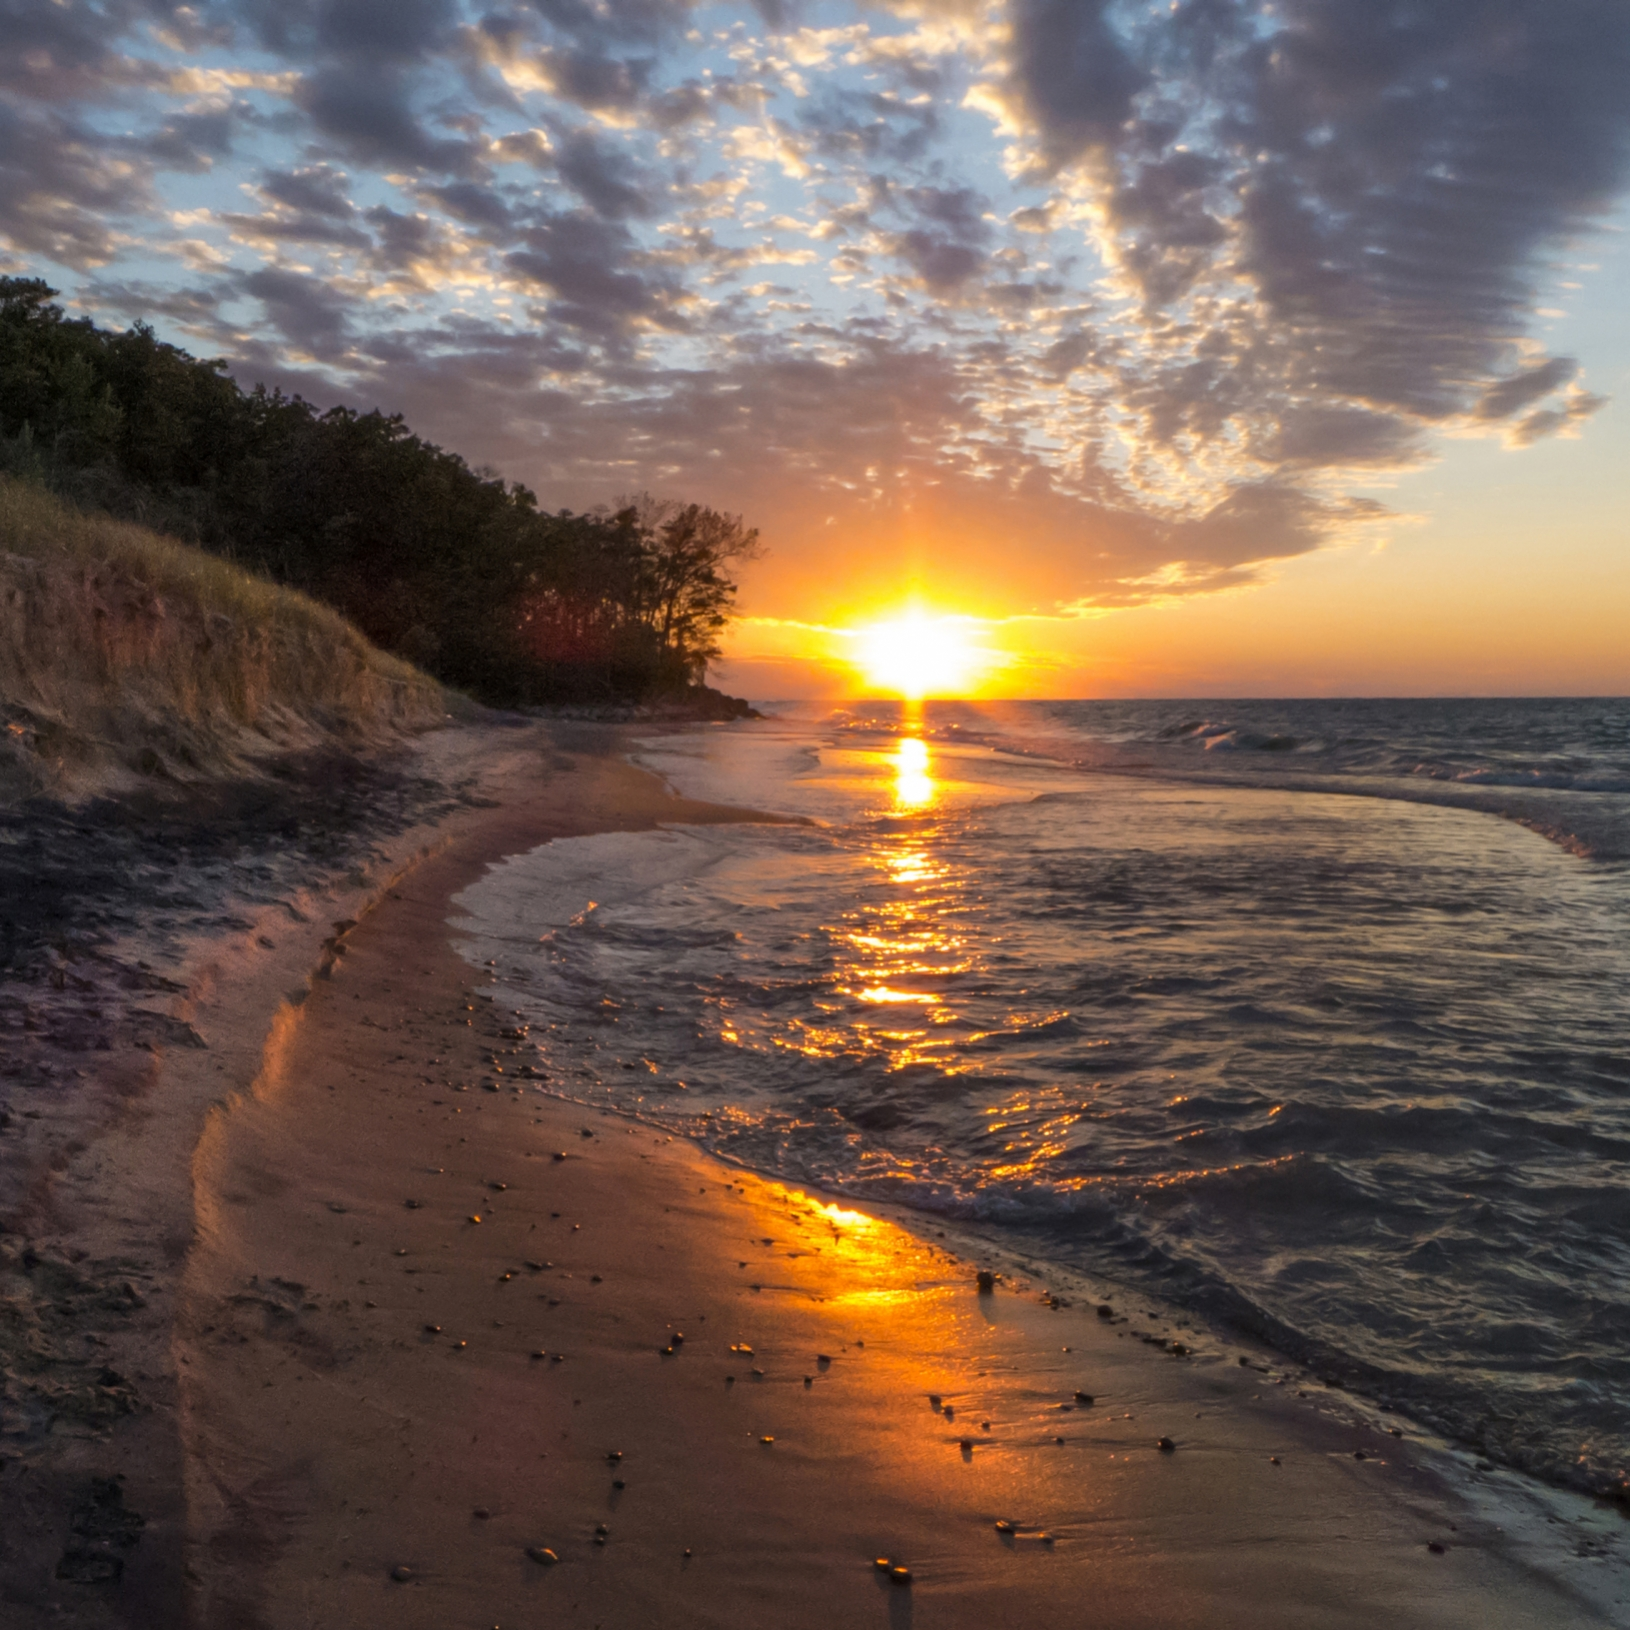 Michael Gard, Indiana Dunes National Lakeshore, artist-in-residence, photographer